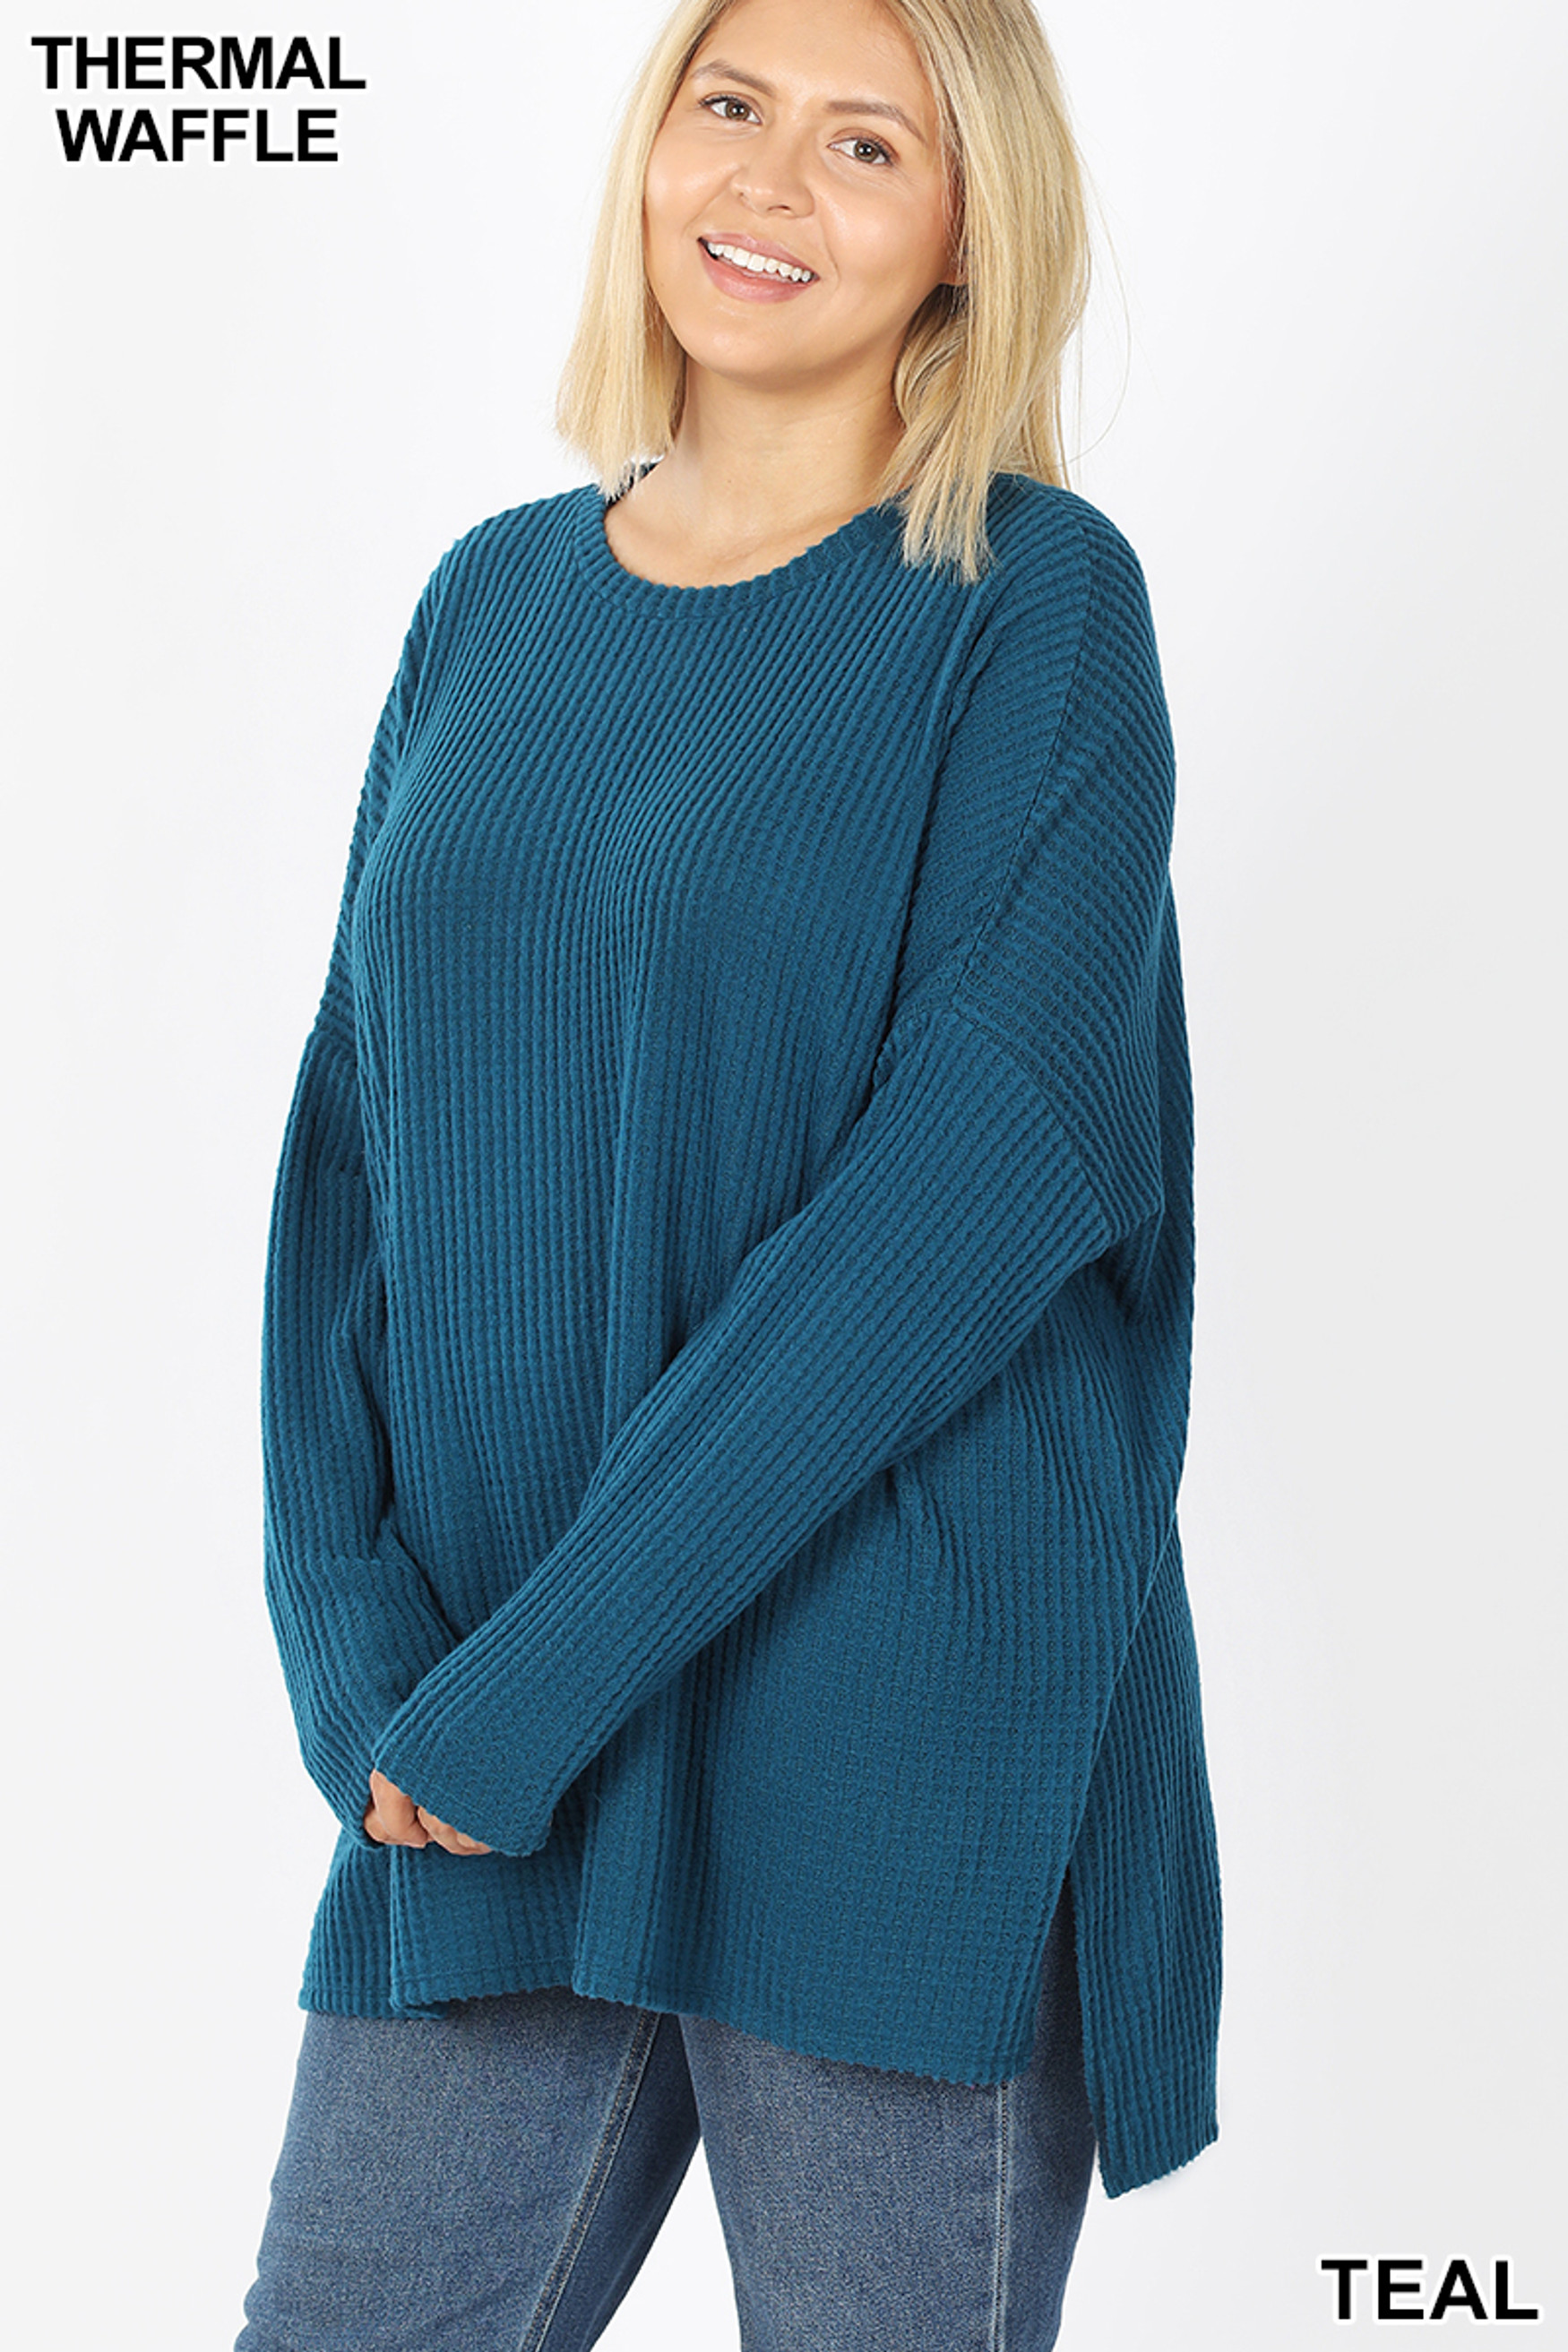 45 degree View of Teal Brushed Thermal Waffle Knit Round Neck Hi-Low Sweater